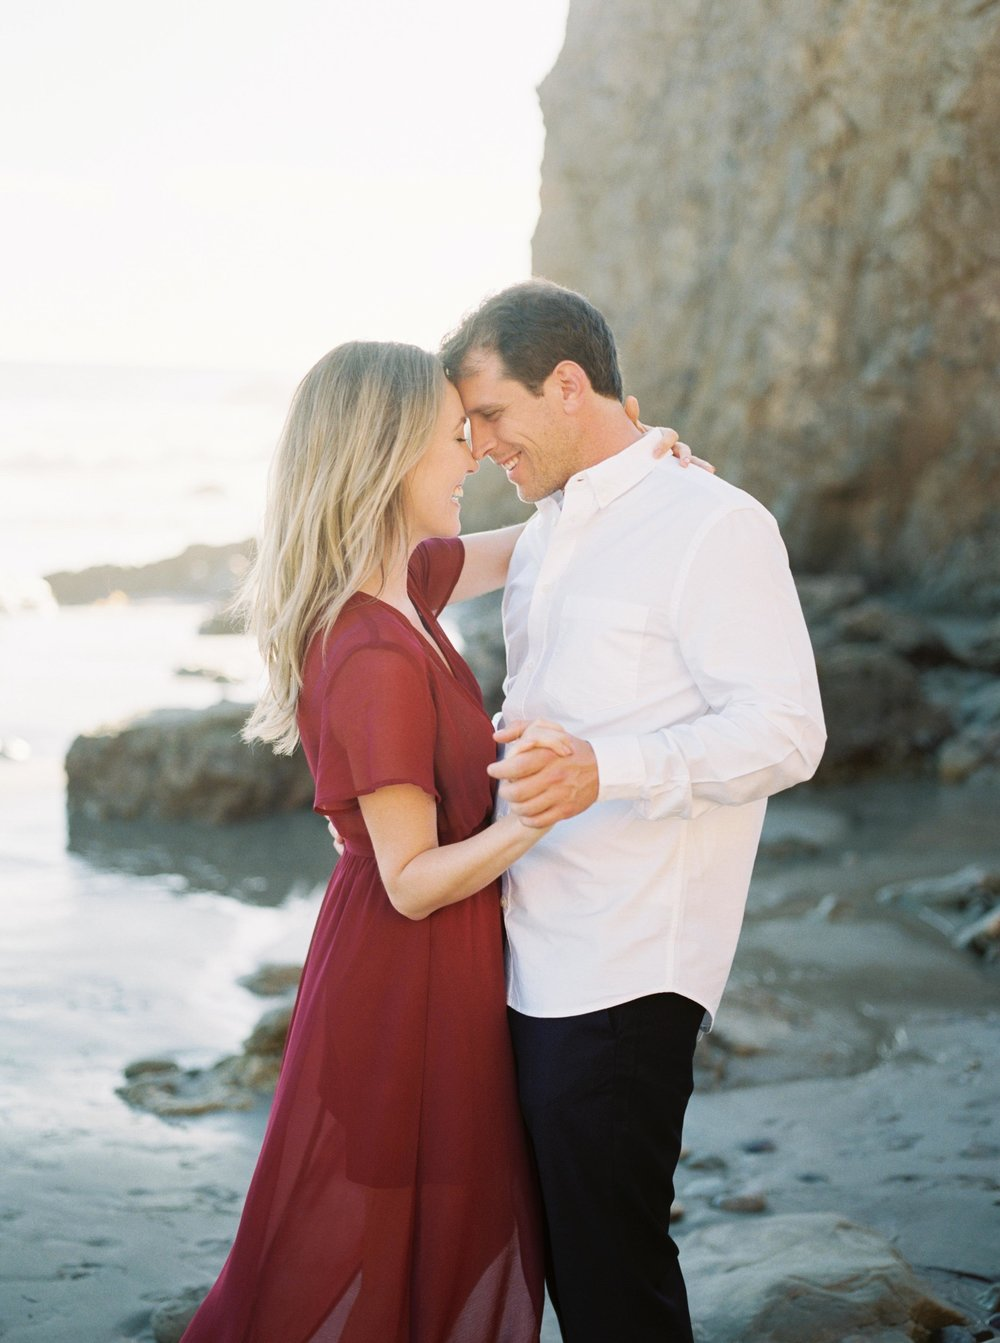 ELMATADOR_FUJI400H_MALIBU_LOSANGELES_PHOTOGRAPHER_WEDDING_ENGAGEMENT_STYLEMEPRETTY_FILM_BEACH_SOCAL_KATELROSEPHOTOGRAPHY_007.jpg